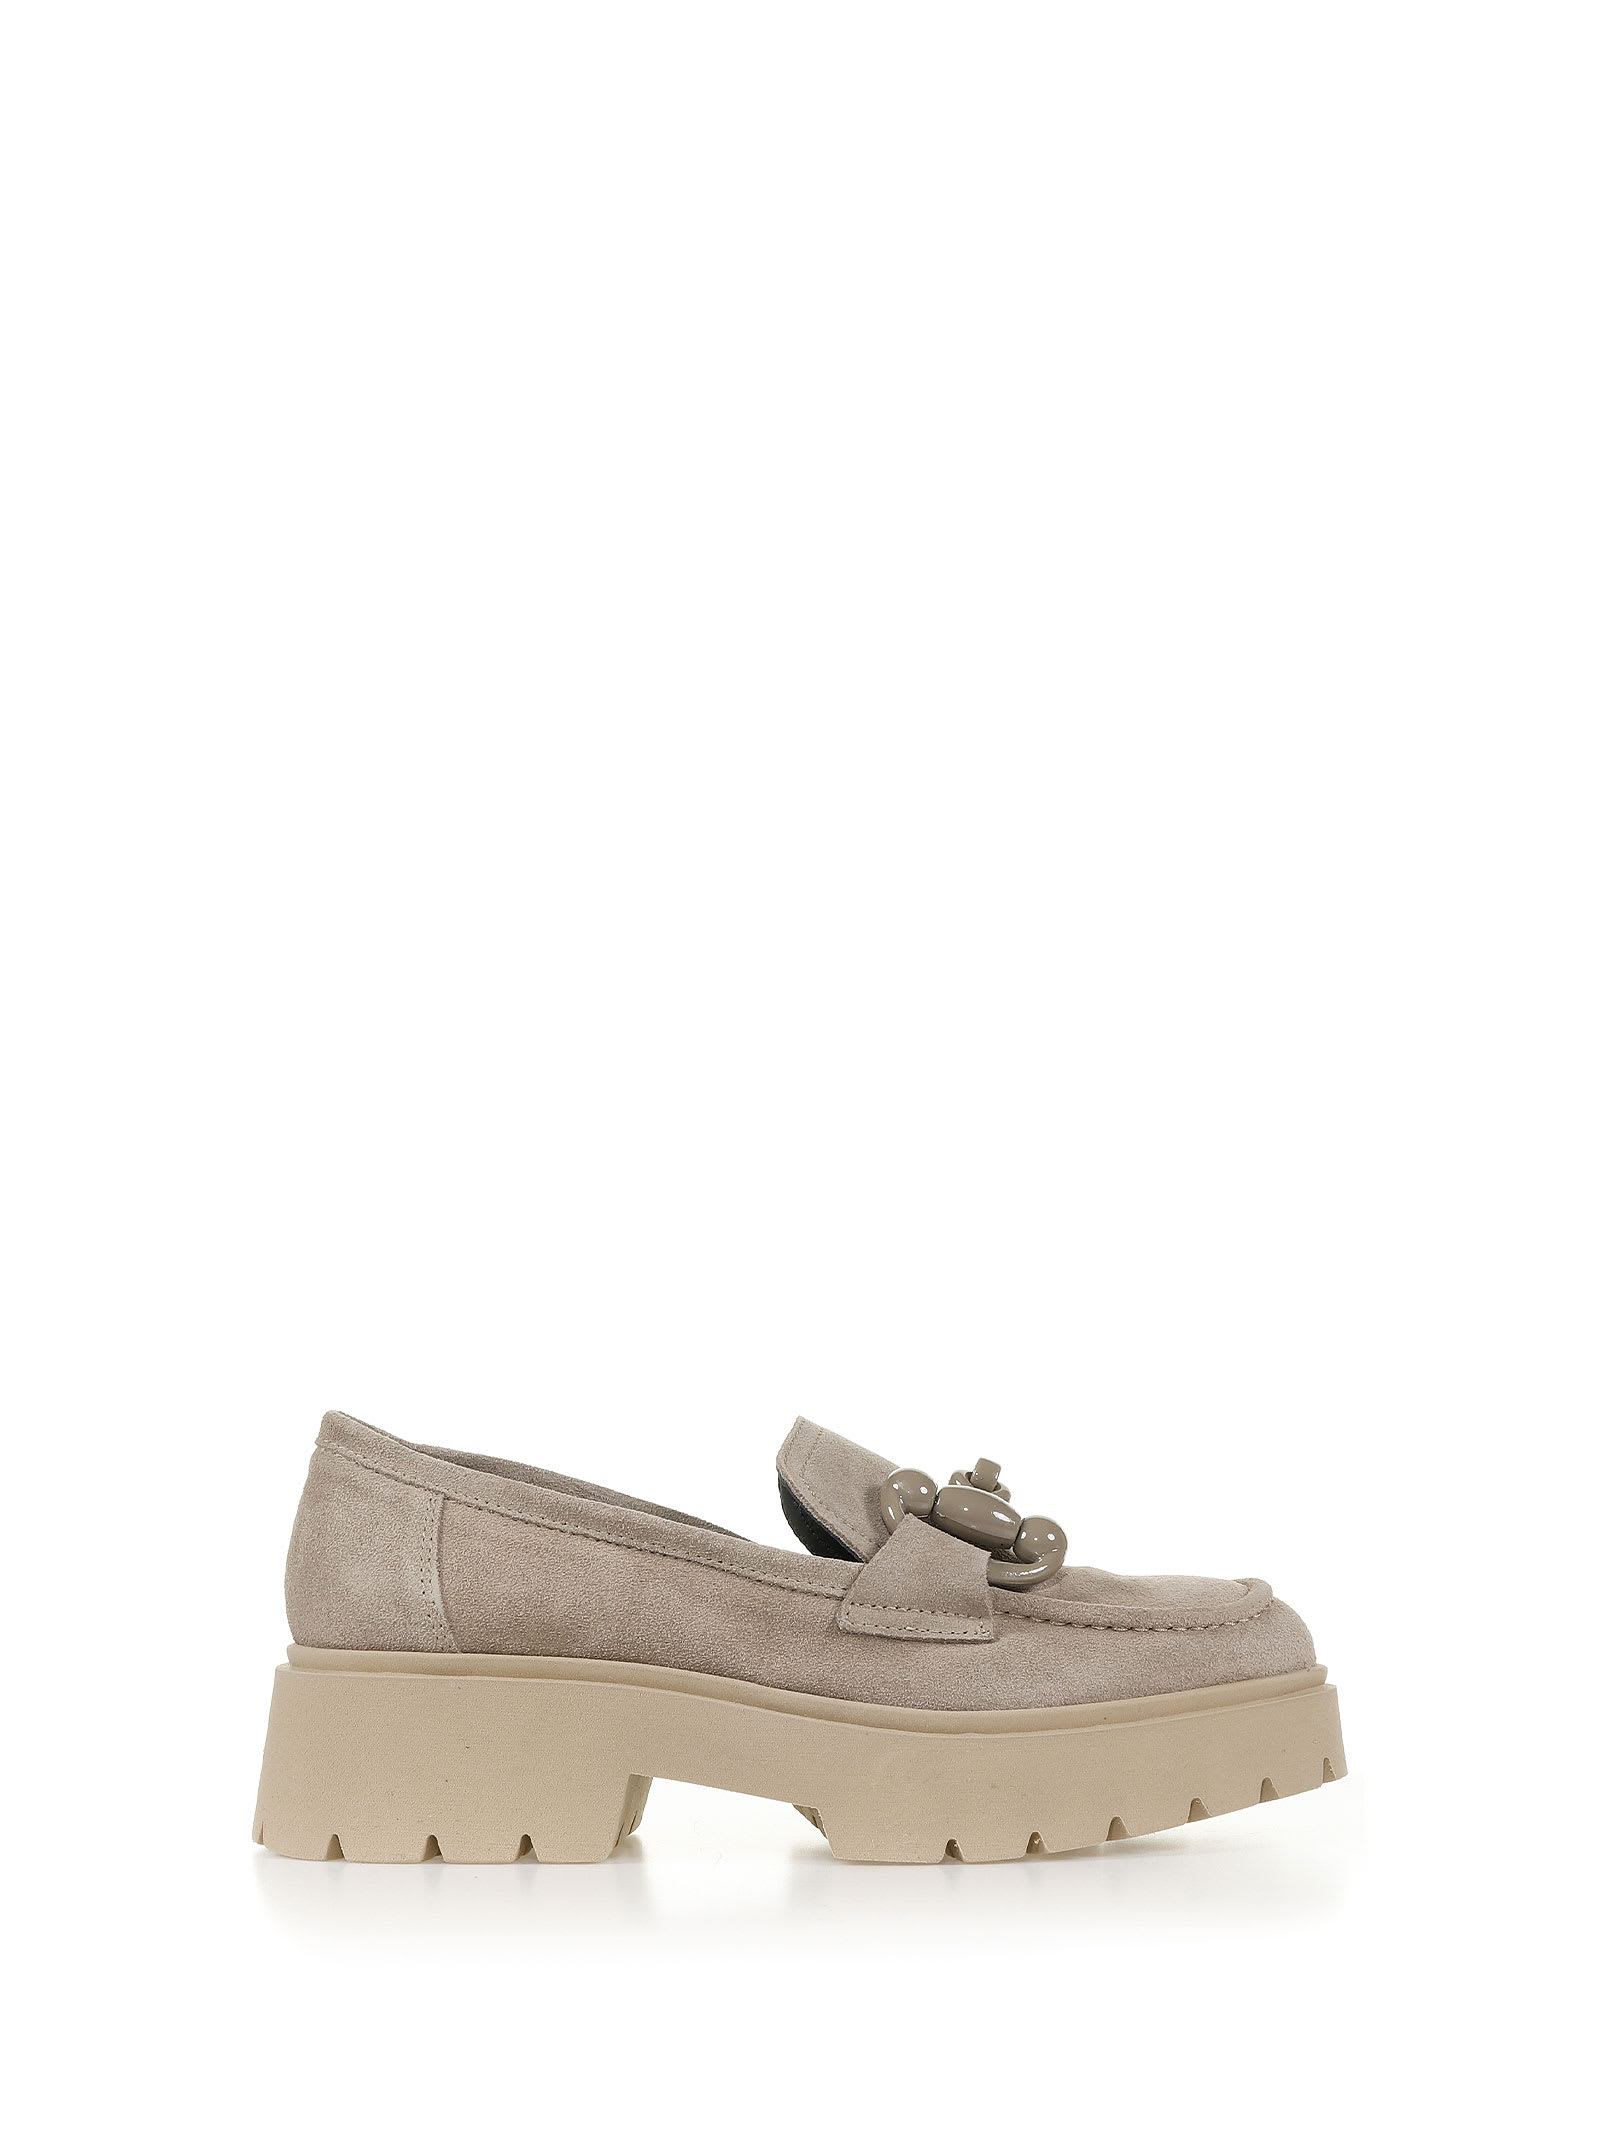 Loafer With Maxi Sole